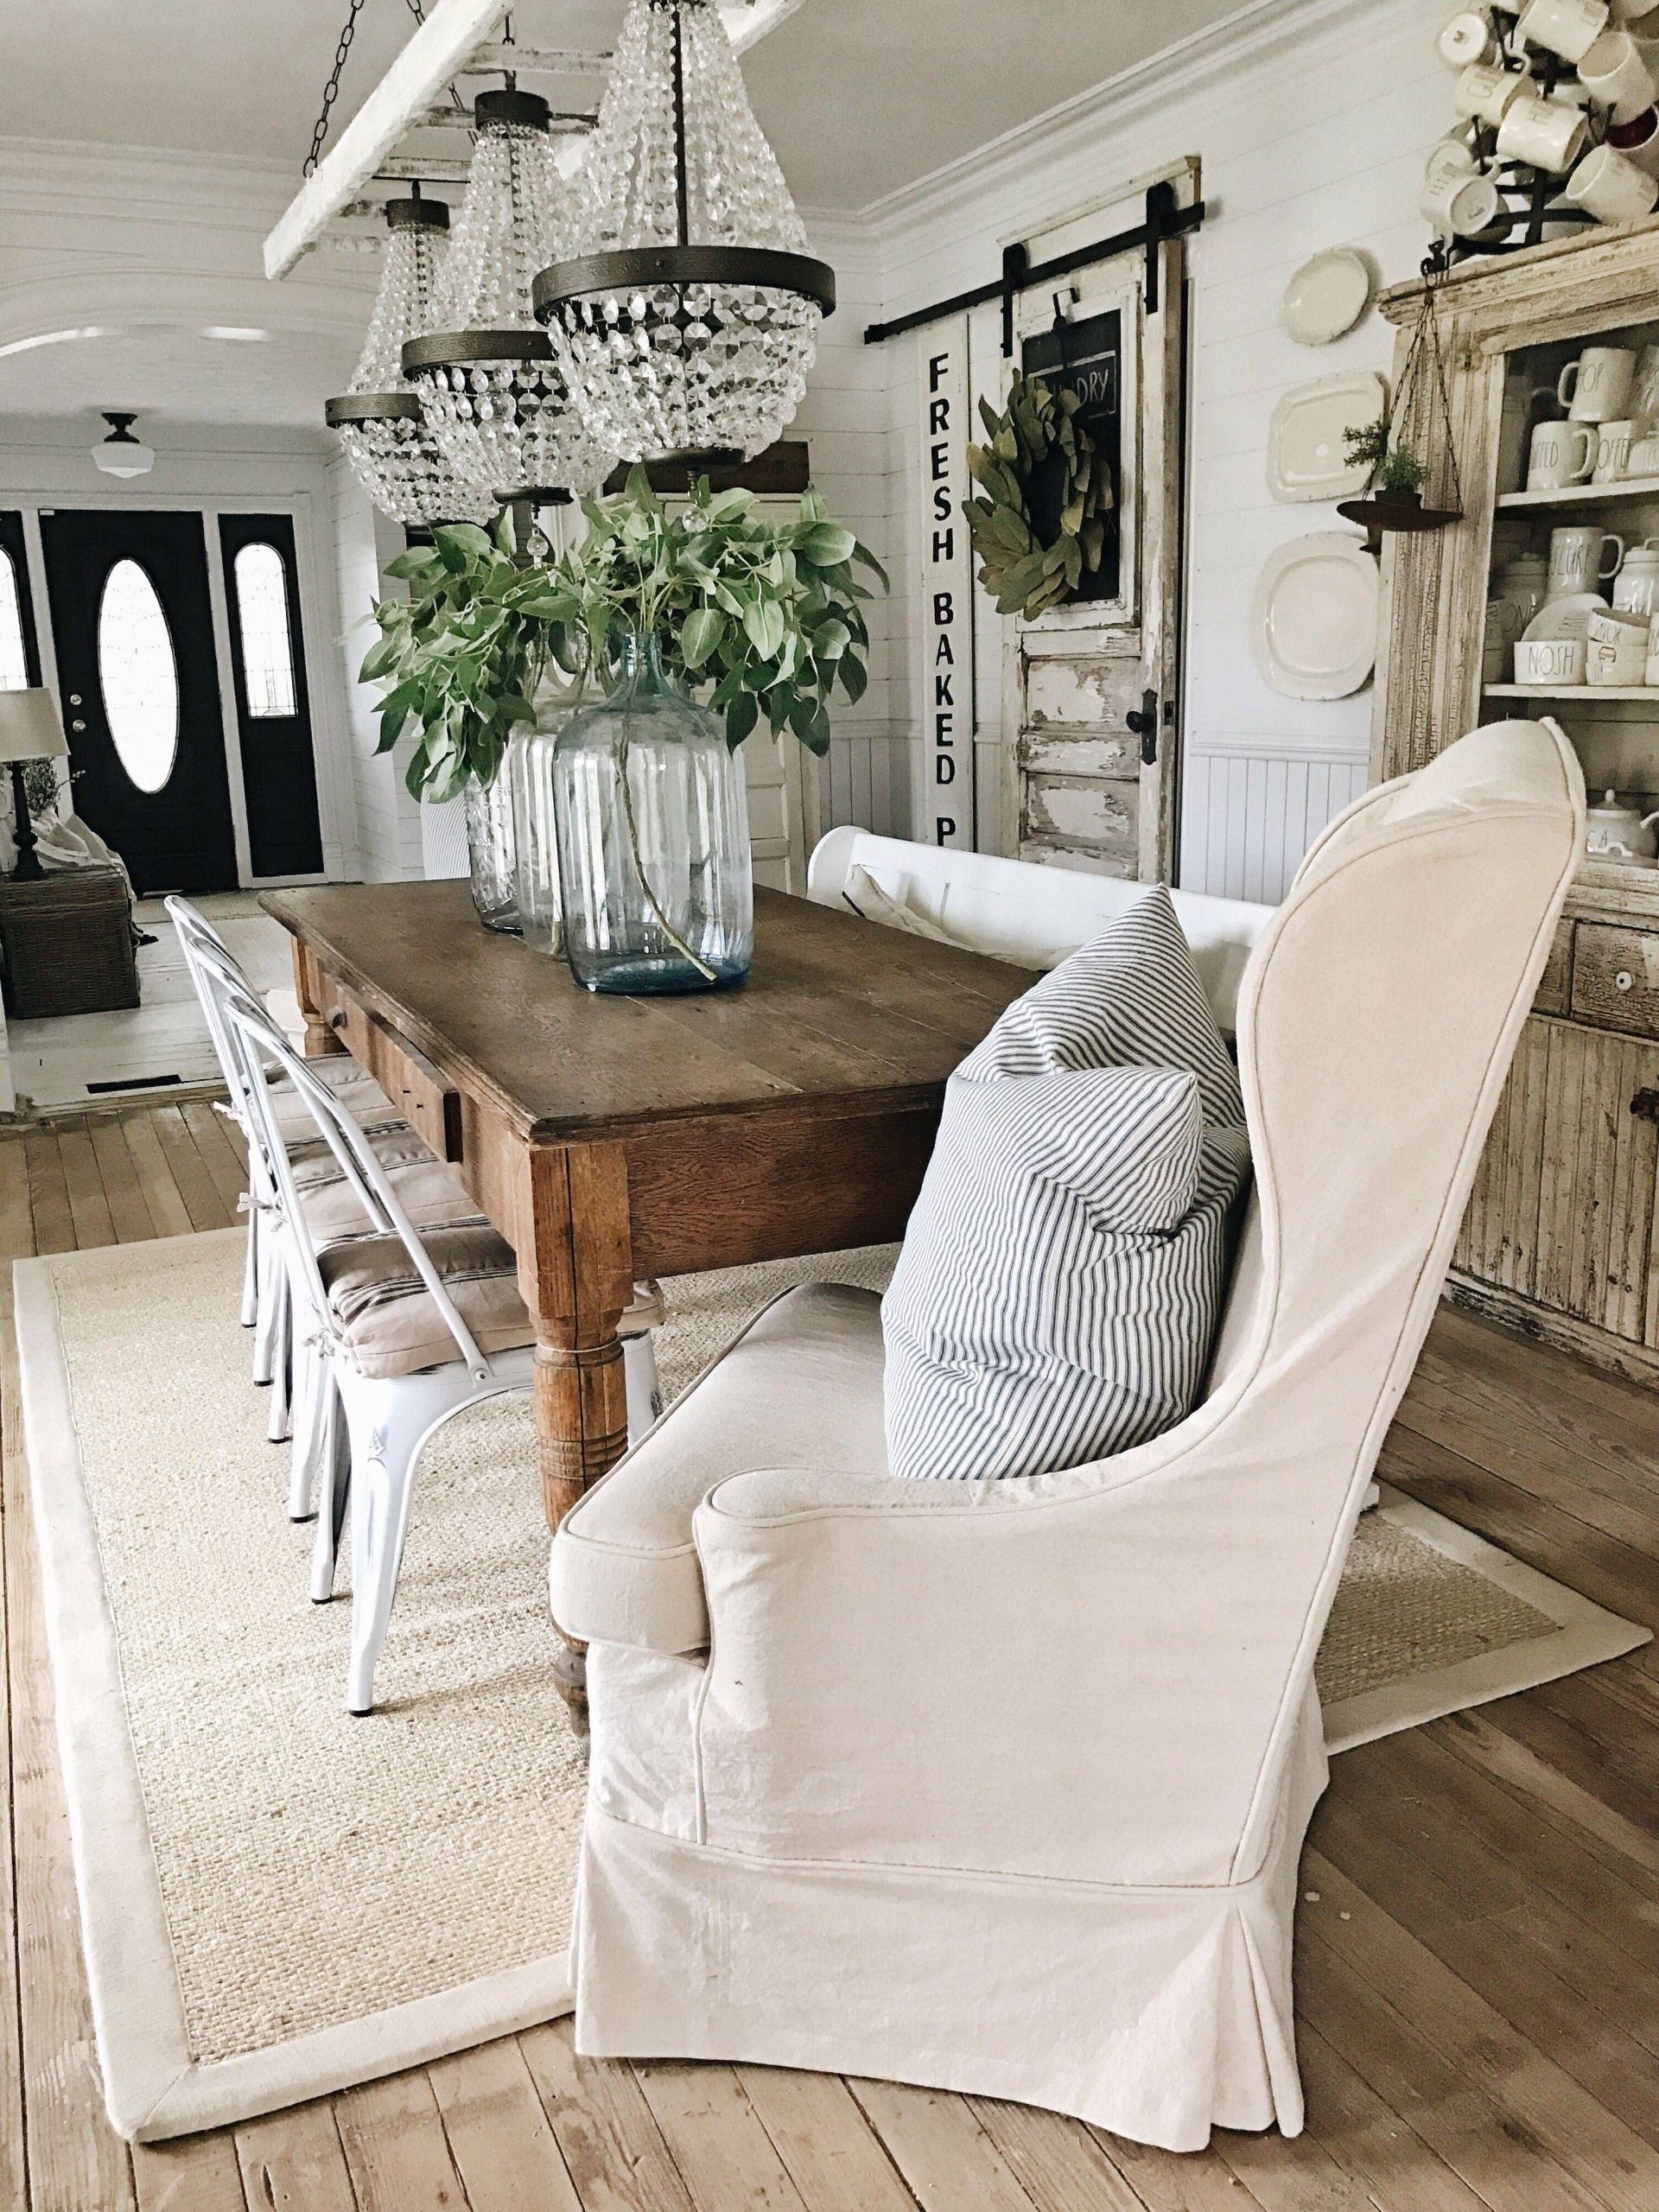 hardwood floor decorating ideas of inspirational dining room decor ideas pinterest levitrainformacion with dining room decor ideas pinterest 8 fetching farmhouse dining room chandelier a